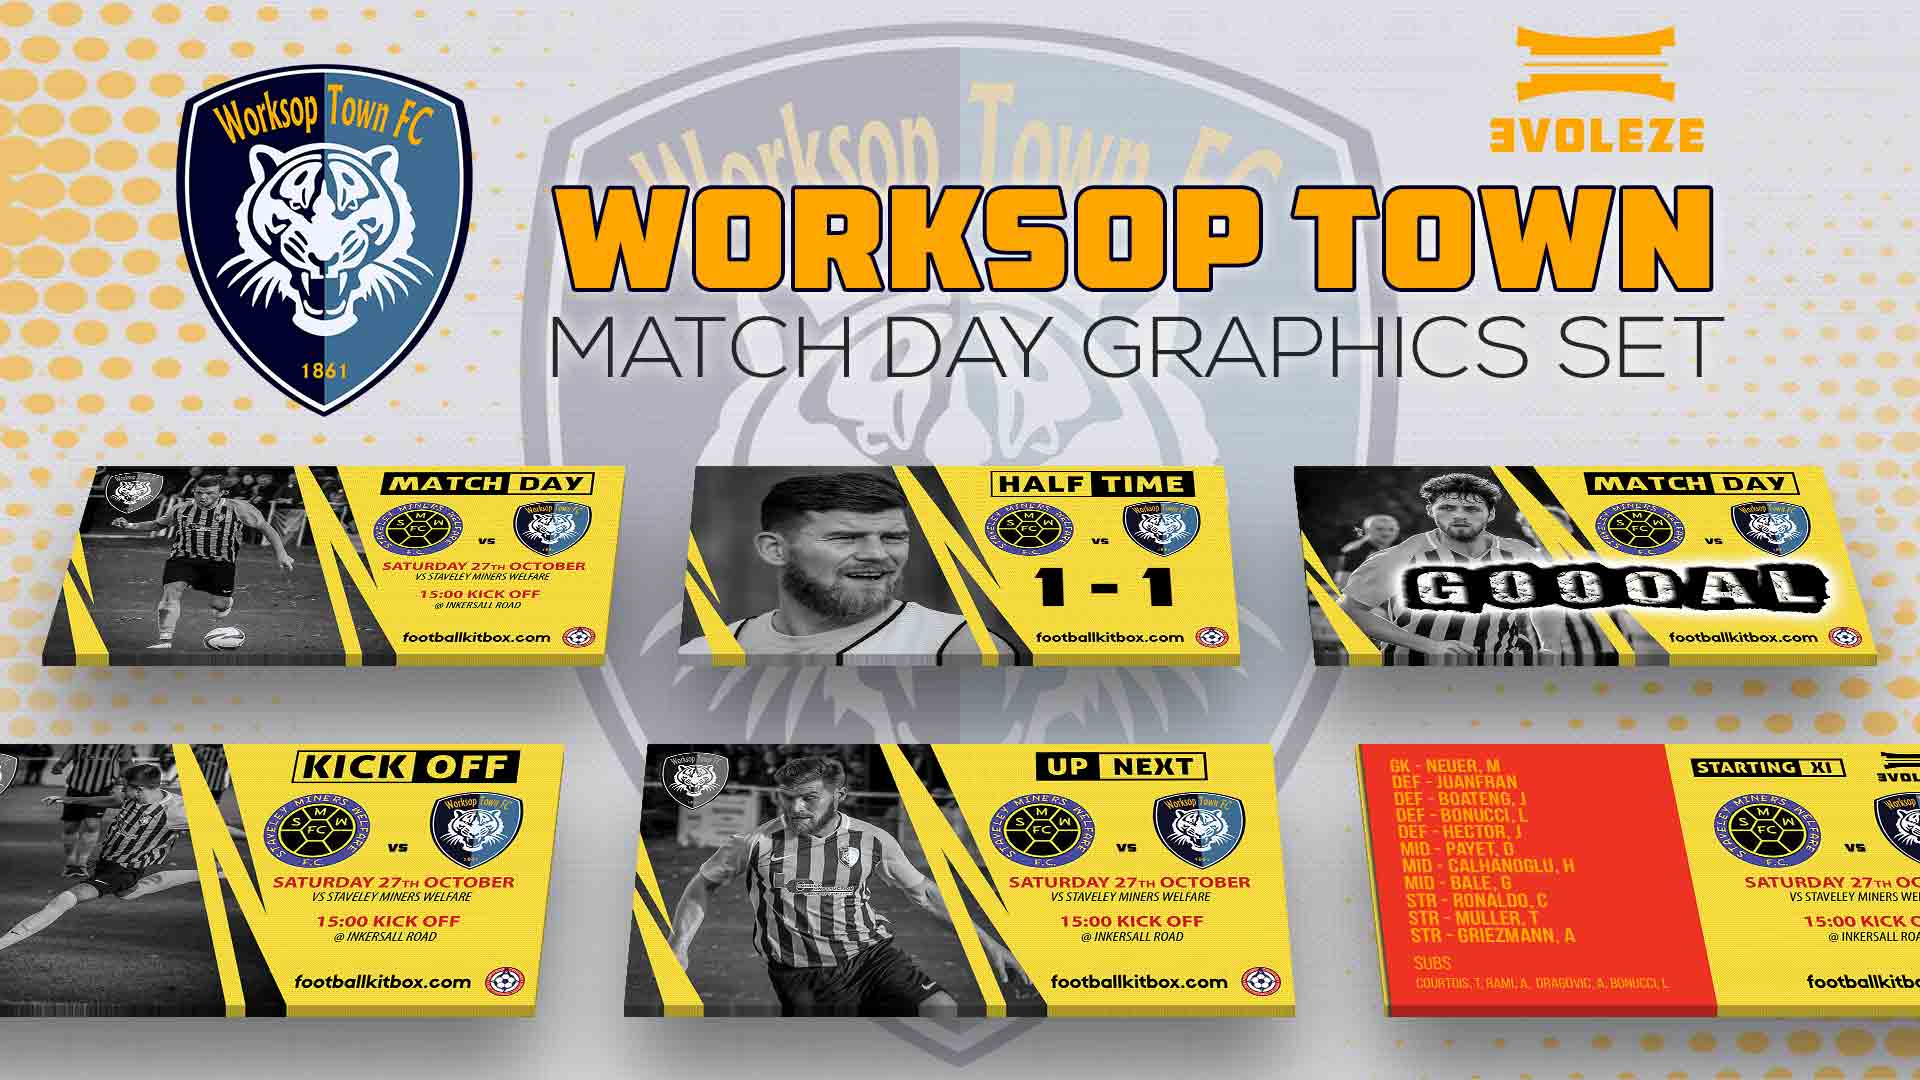 worksop town fc match day graphics set